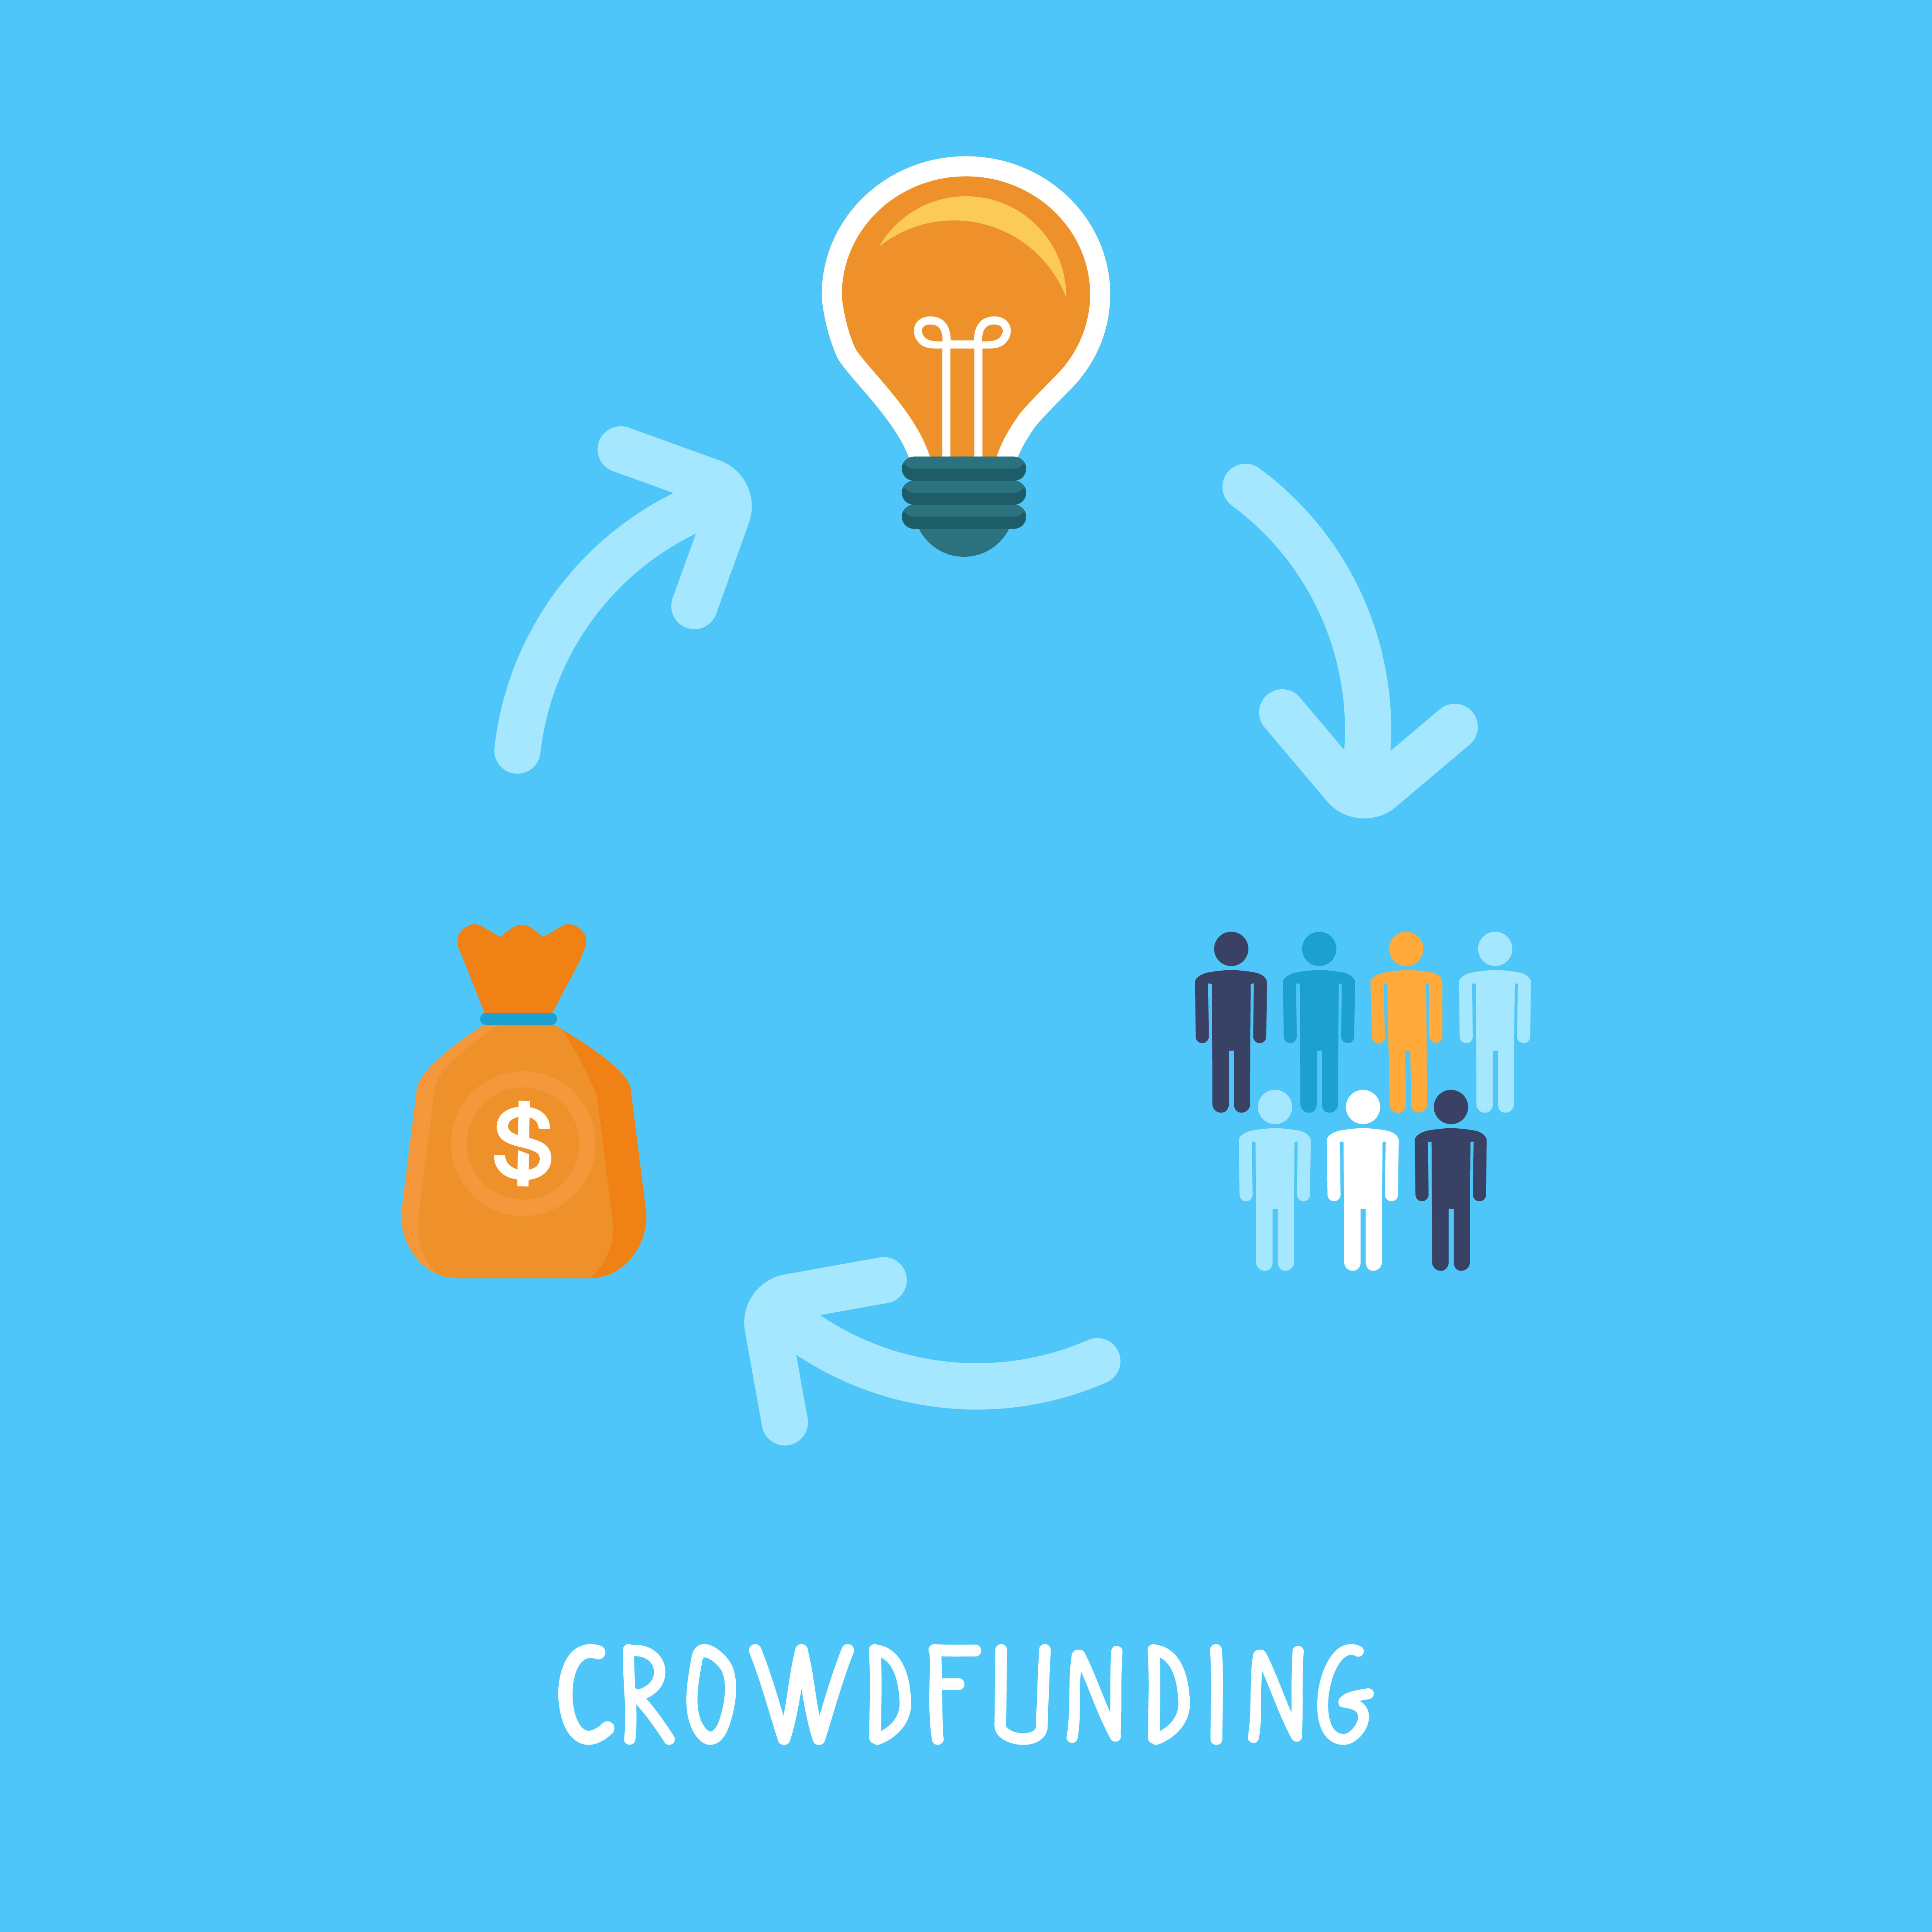 Crowdfunding Campaign Tools and Resources